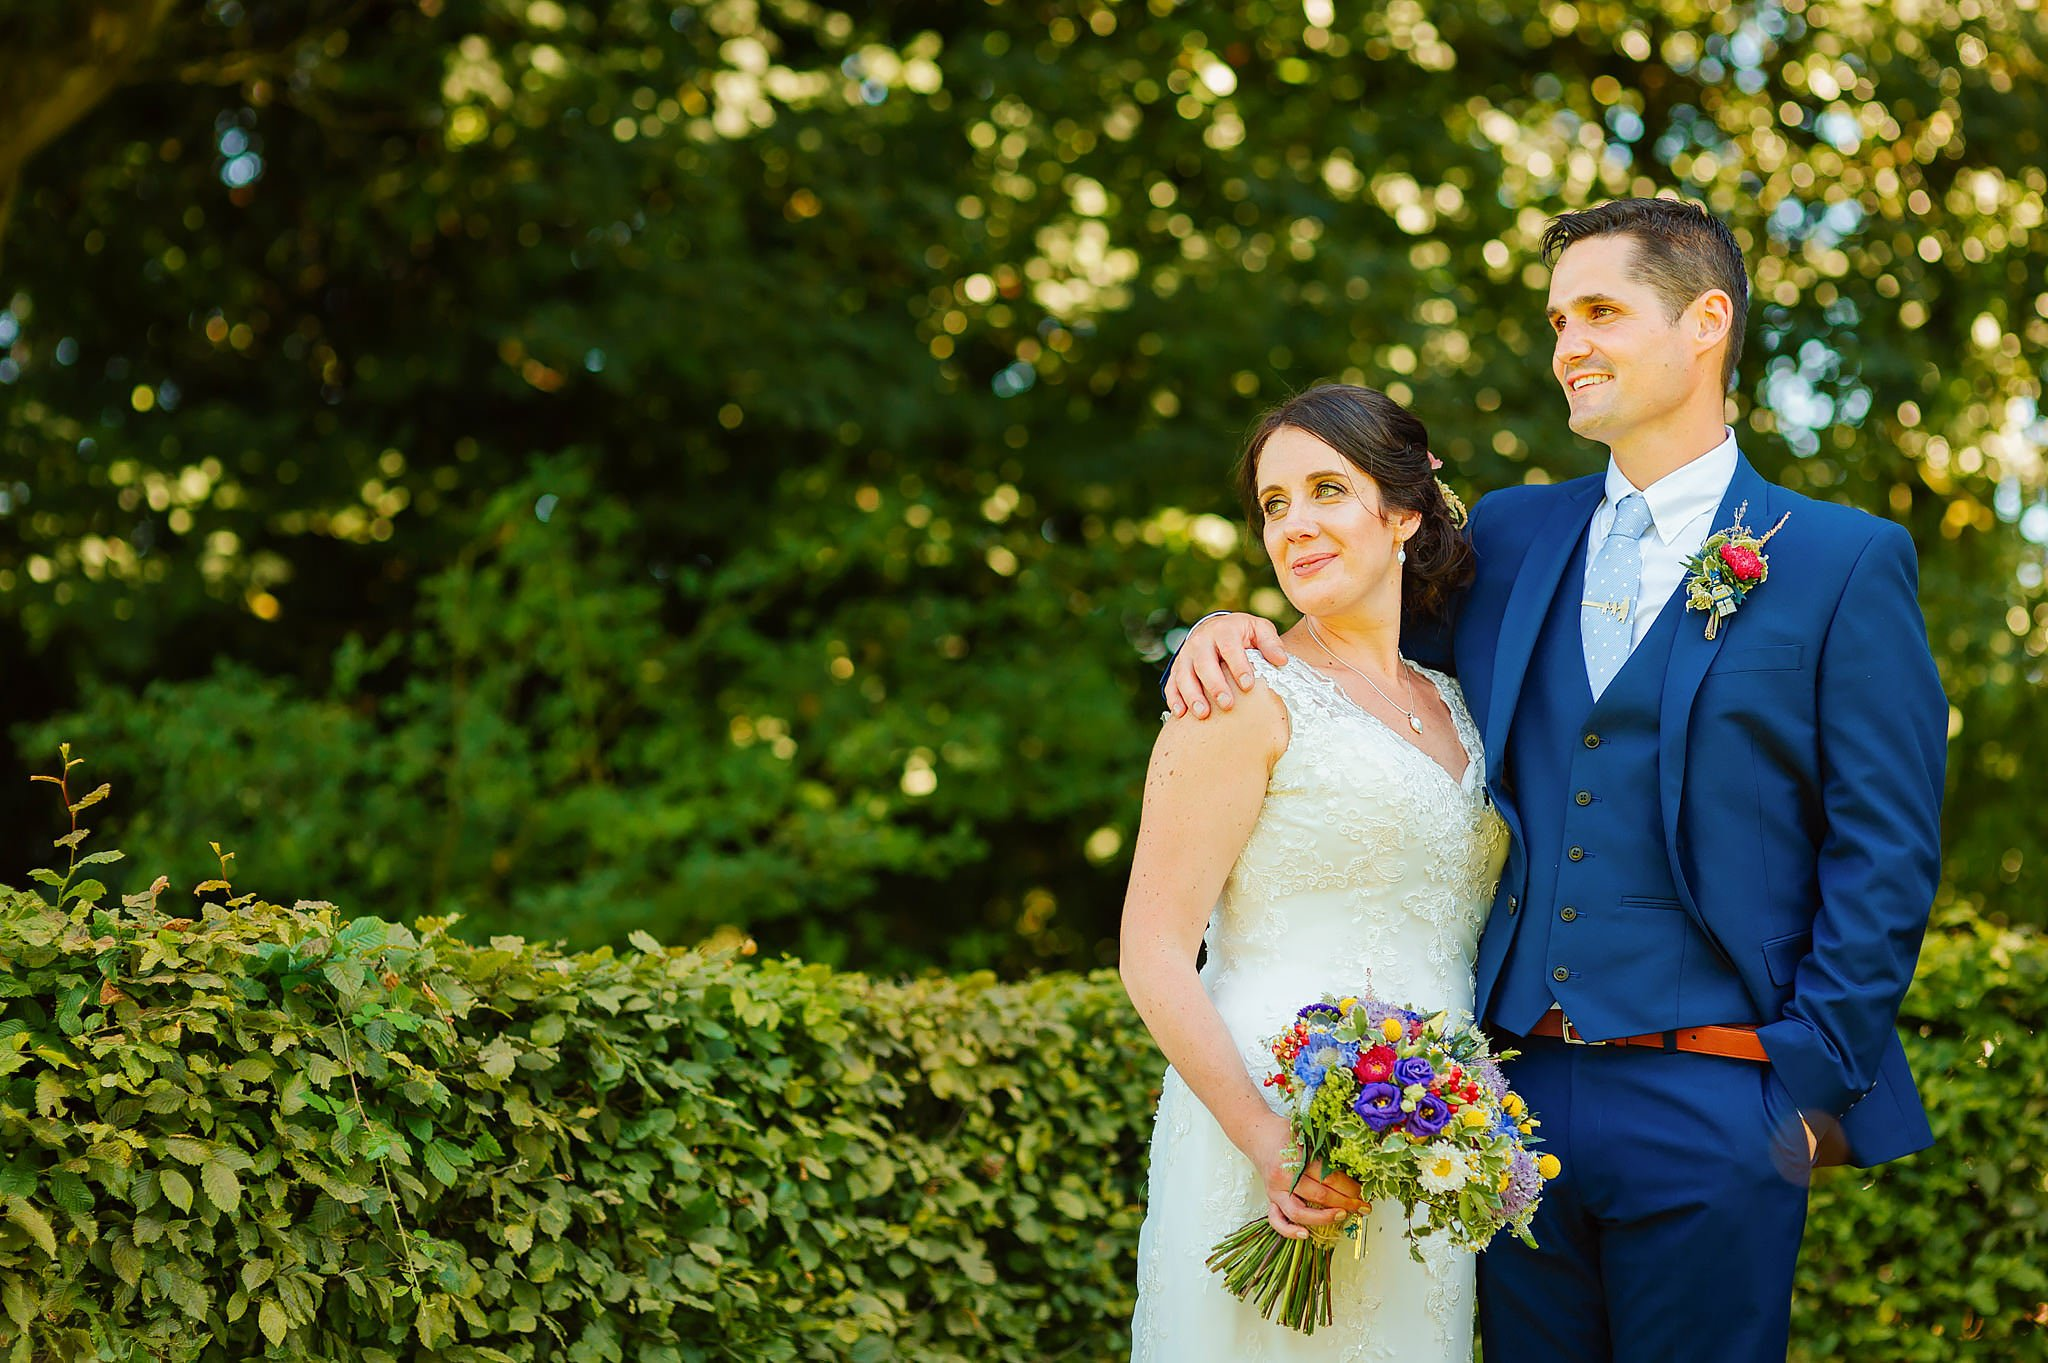 hellens manor wedding 75 - Wedding photography at Hellens Manor in Herefordshire, West Midlands | Shelley + Ian